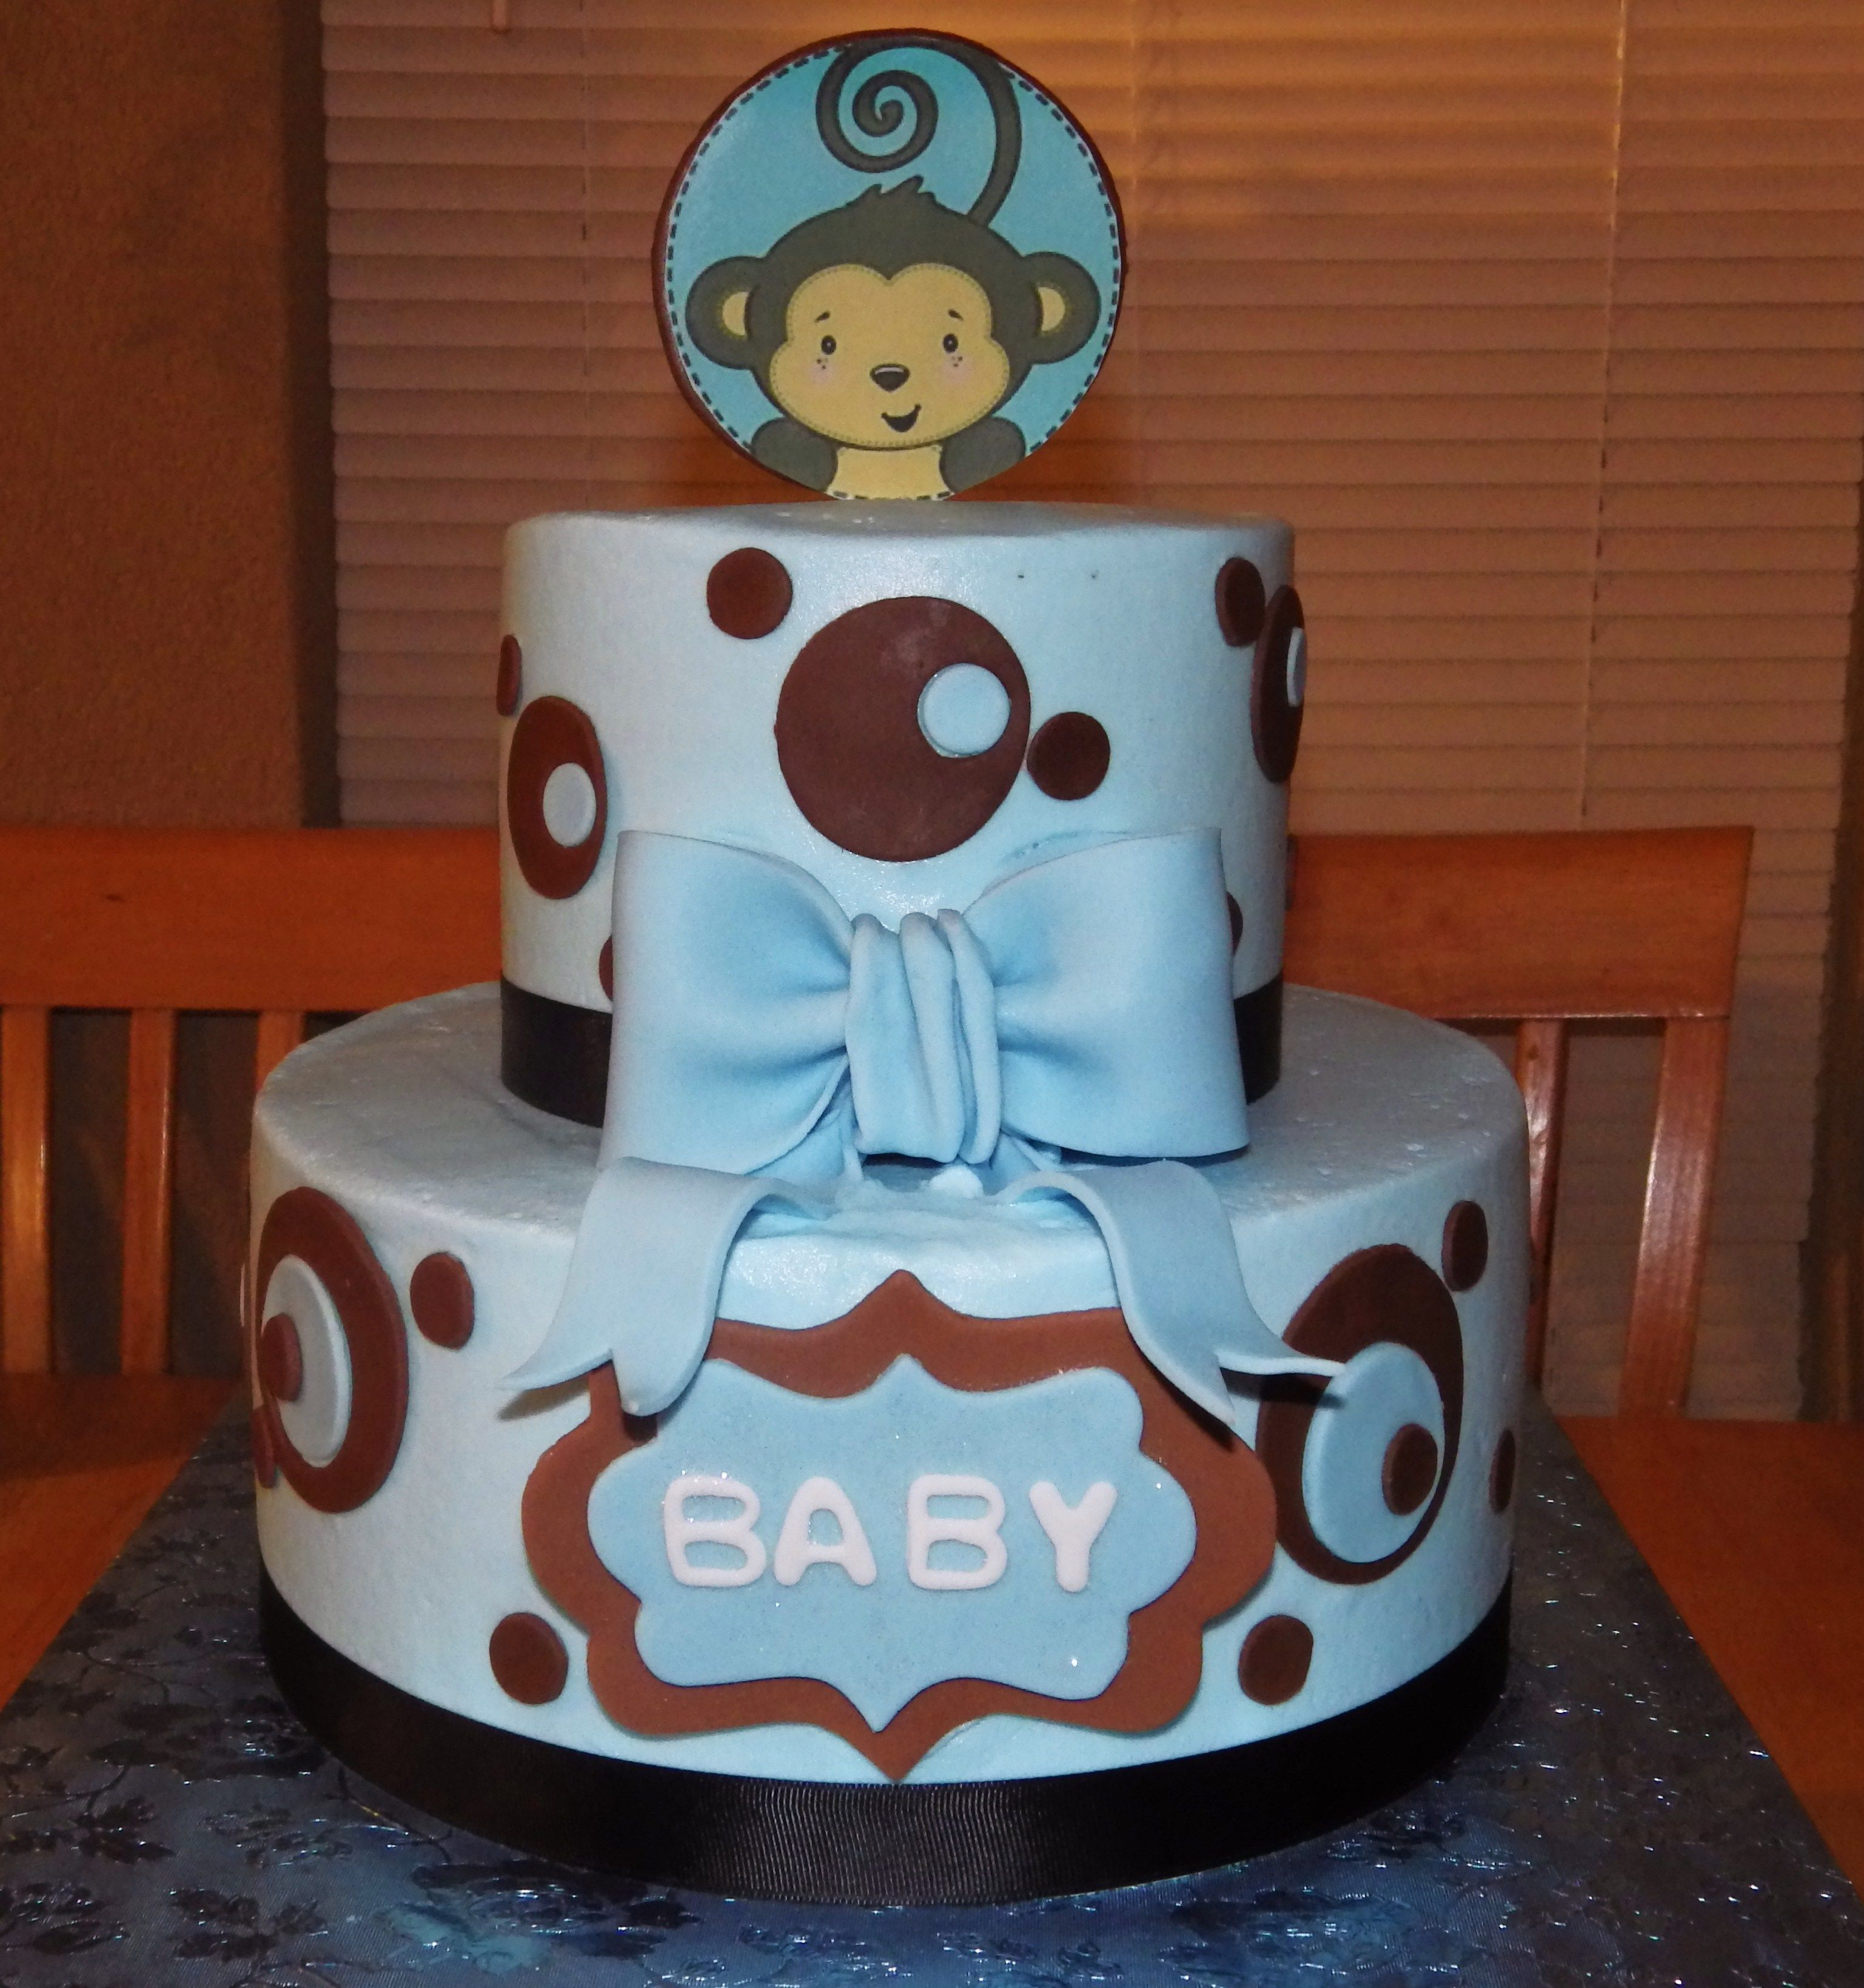 Baby Shower 10 inch 6 inch buttercream cake